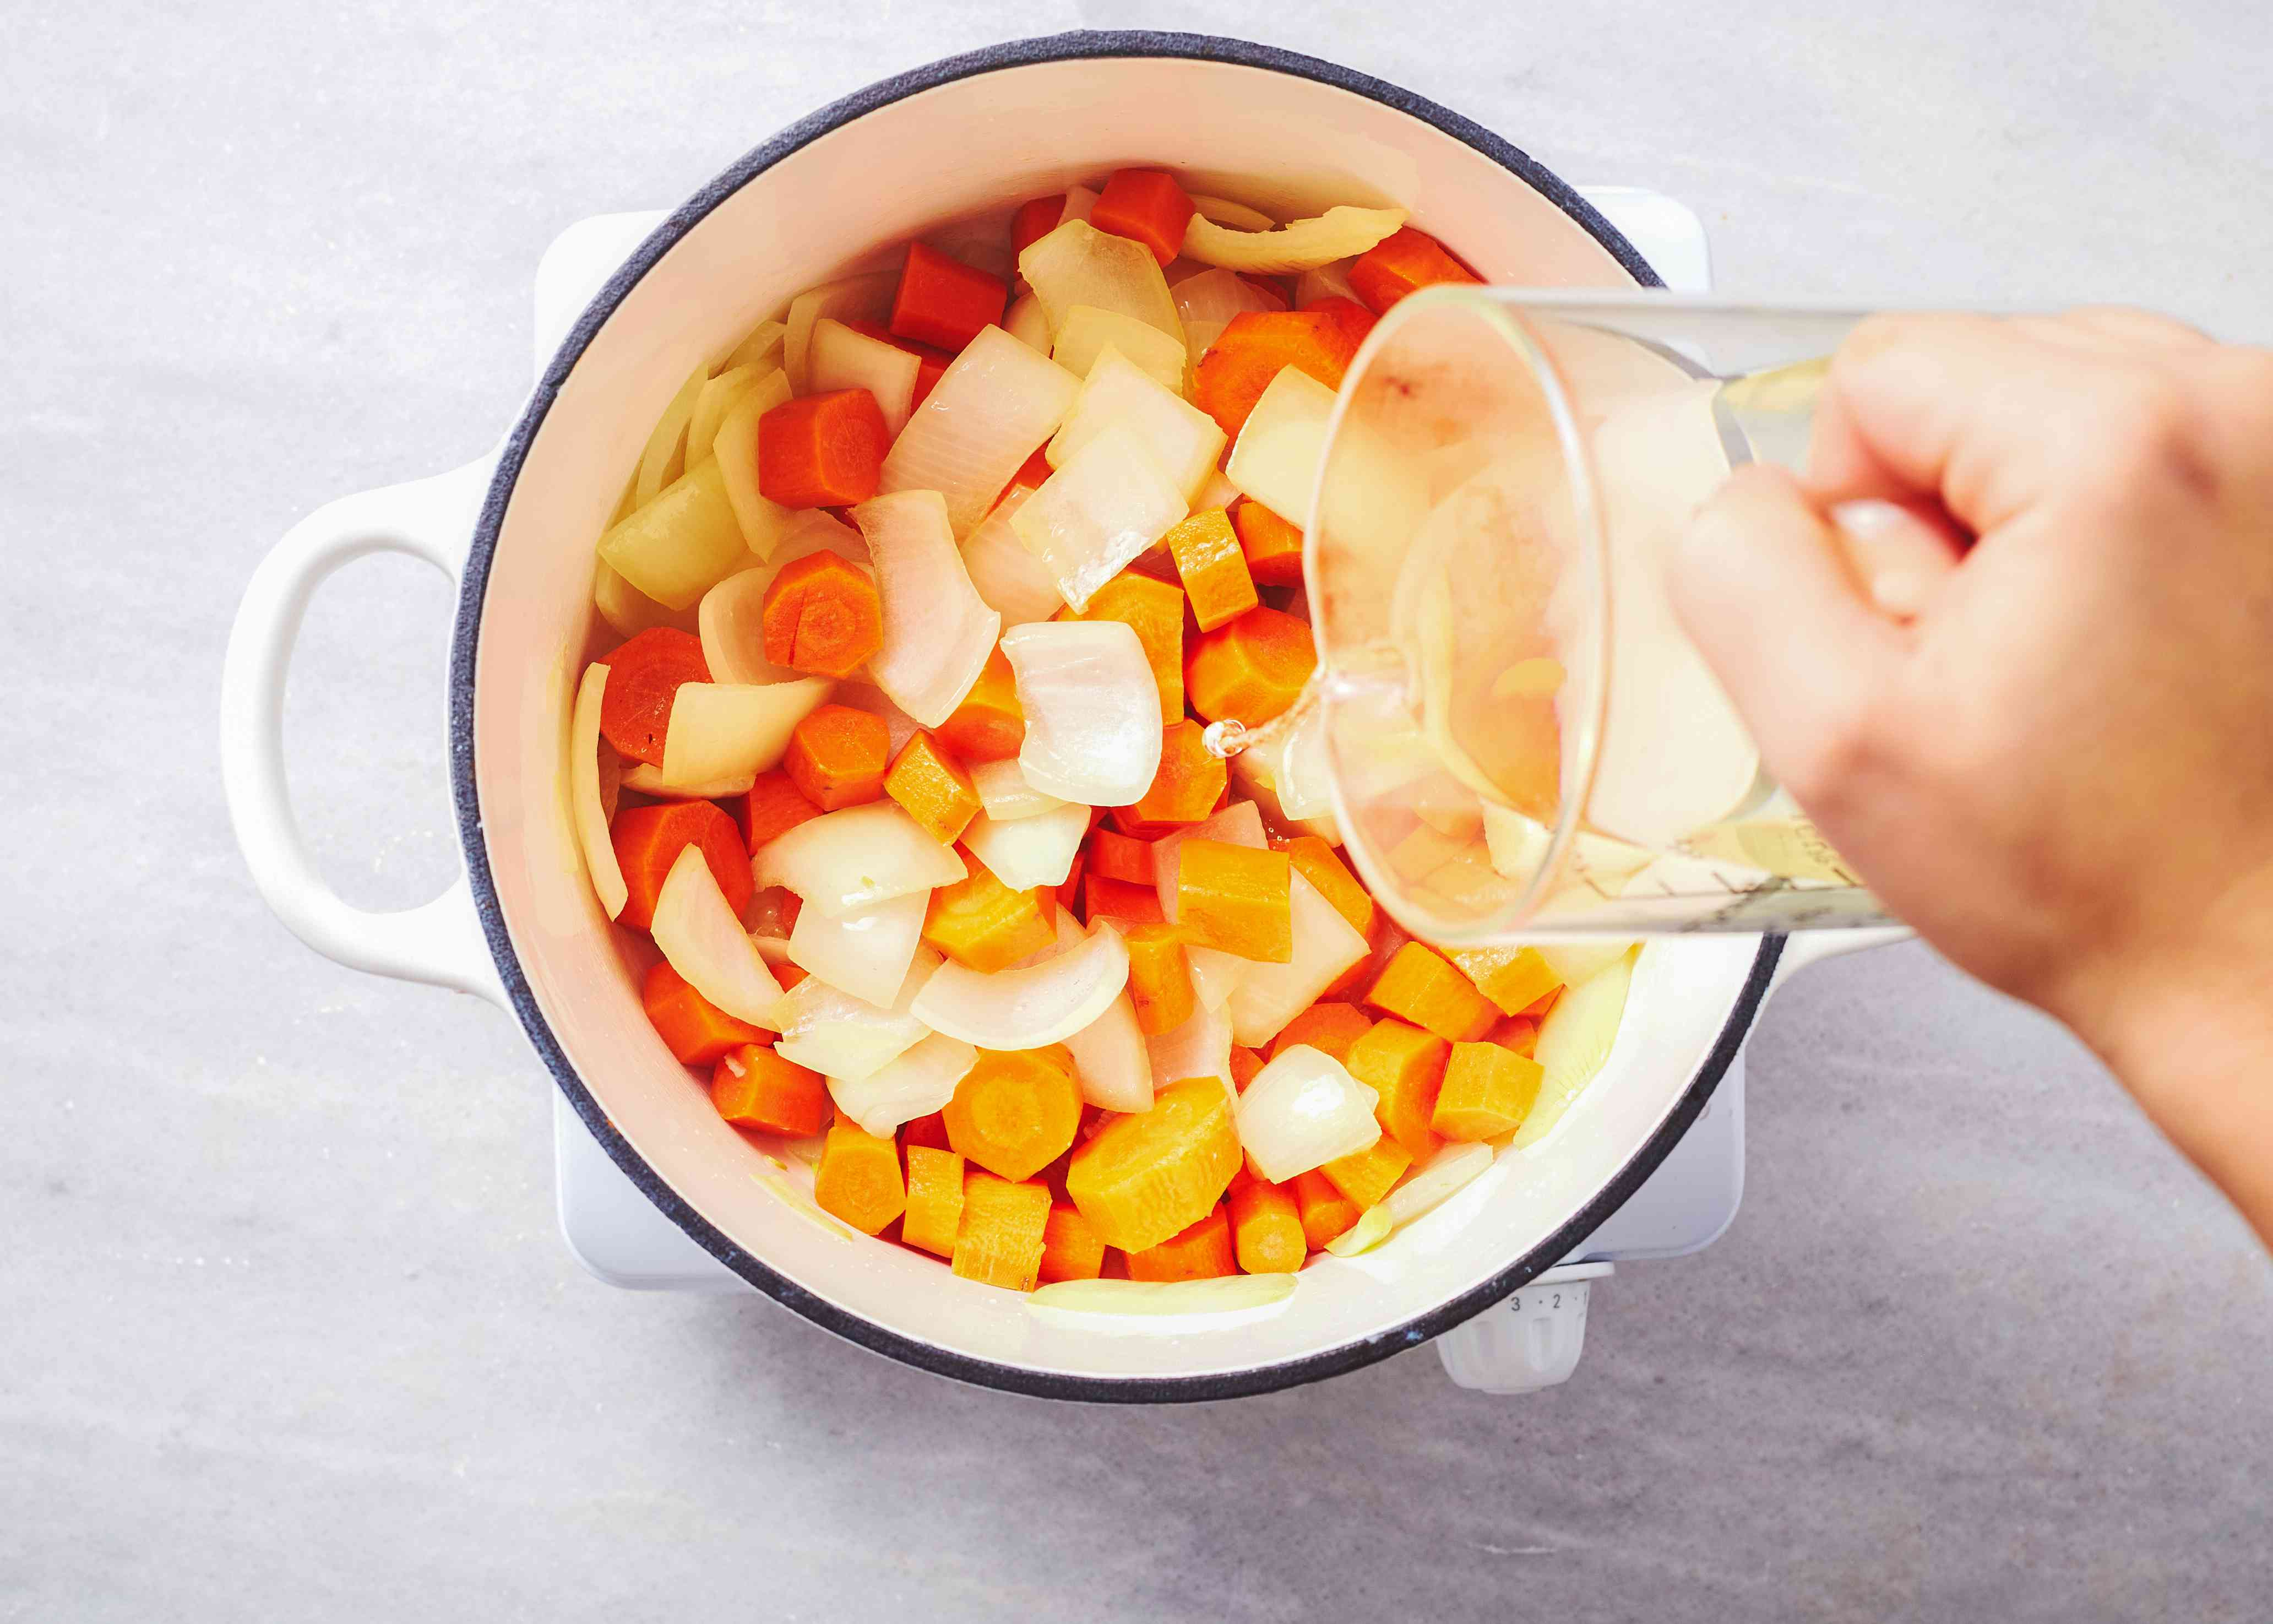 add wine to the onions and carrots to the pot